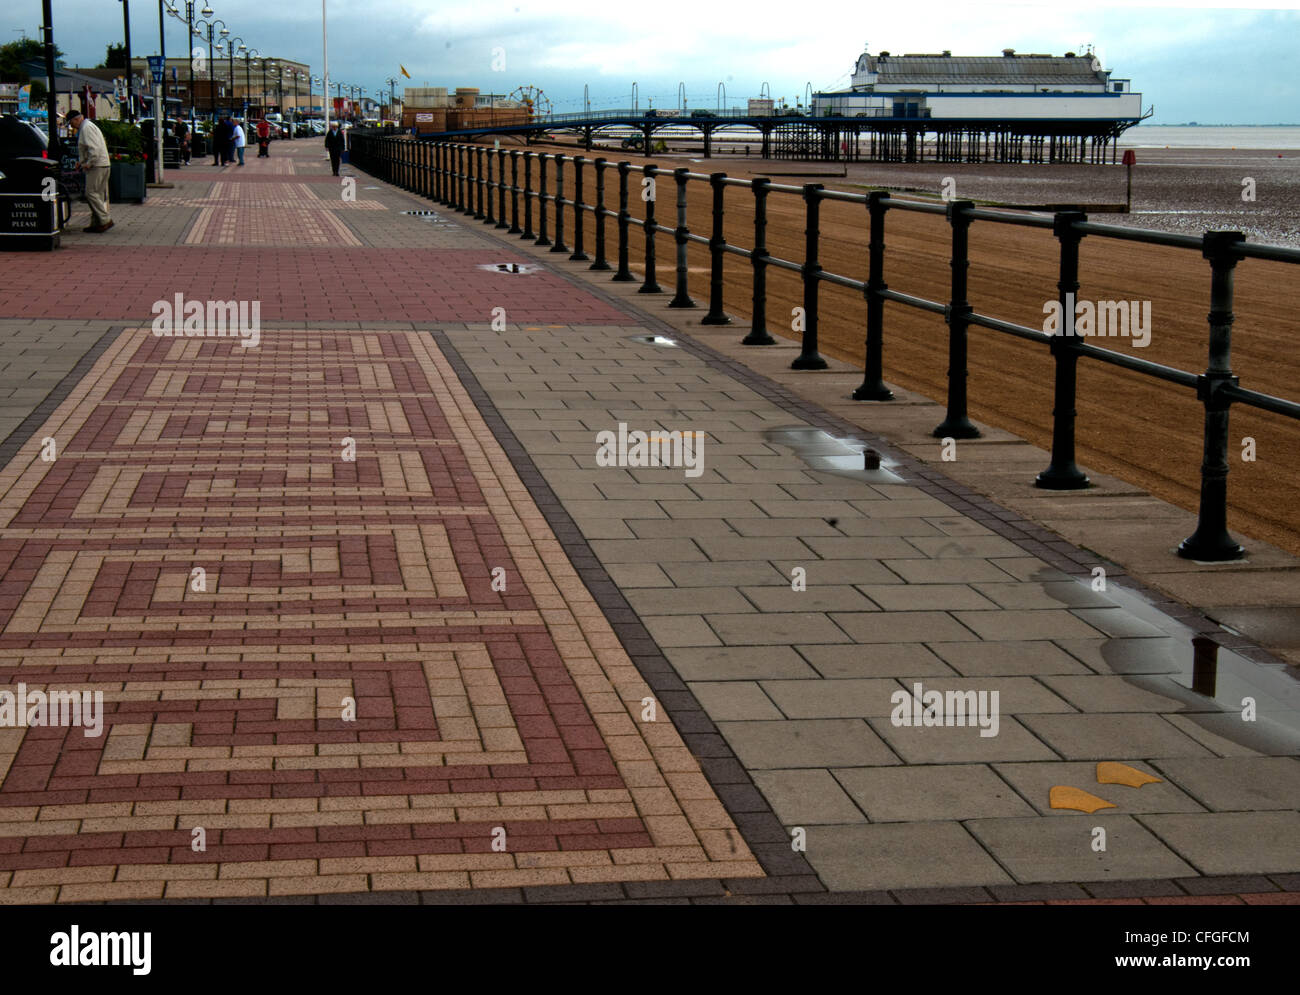 lincolnshire cleethorpes pier and lovely clean beach - Stock Image